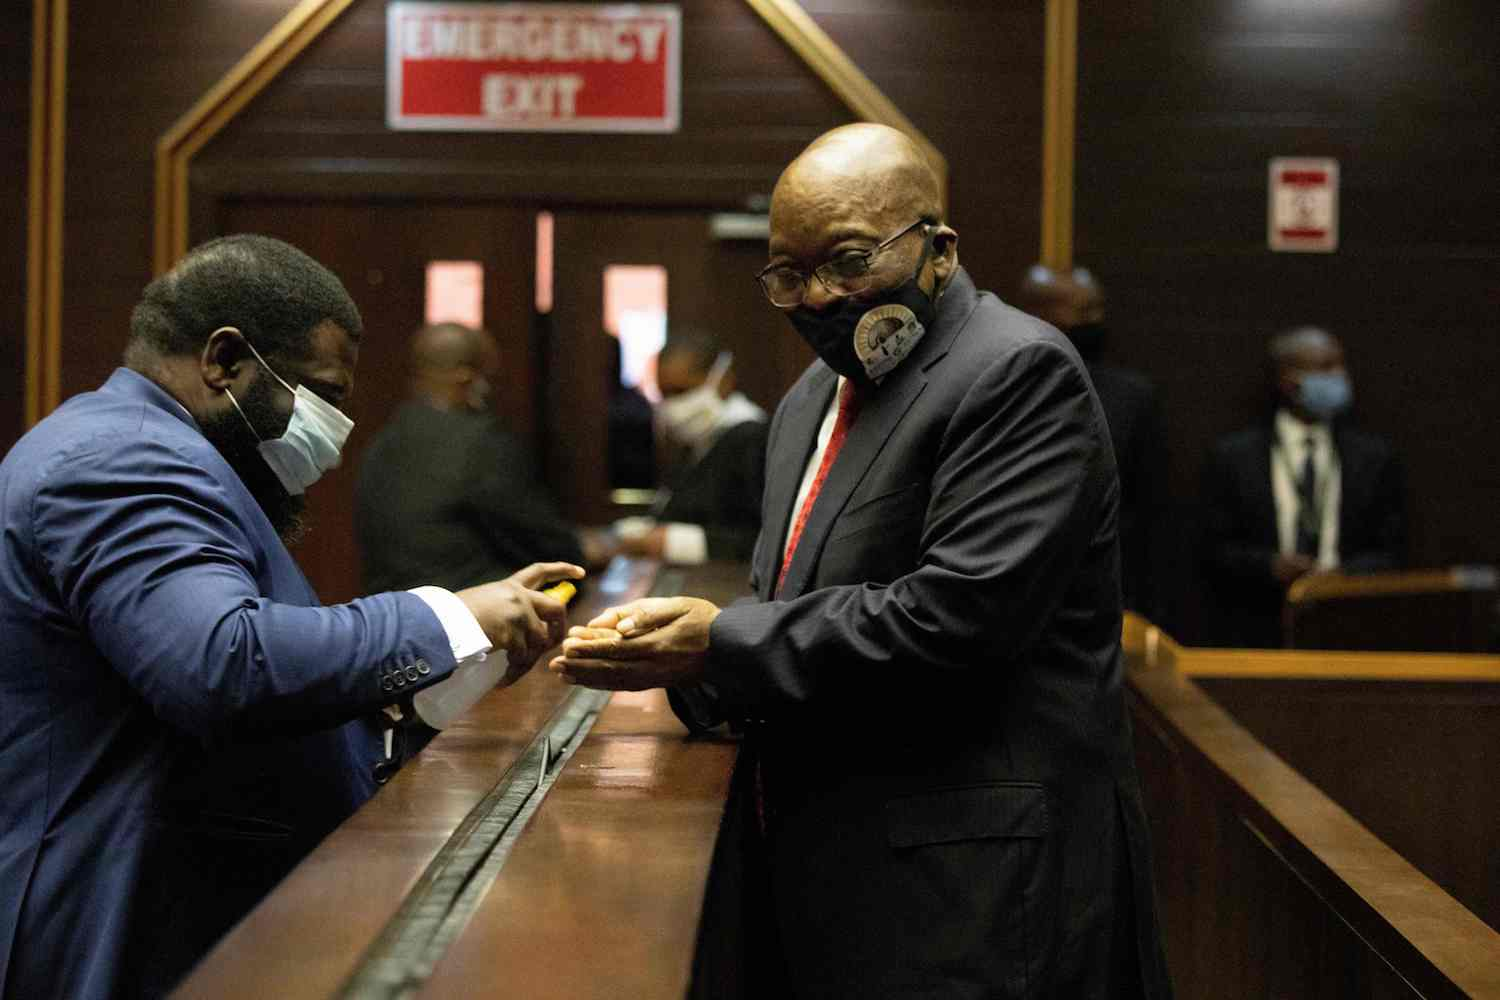 Former South African President Jacob Zuma appears at the Pietermaritzburg High Court in Pietermaritzburg, South Africa, on June 23, 2020.